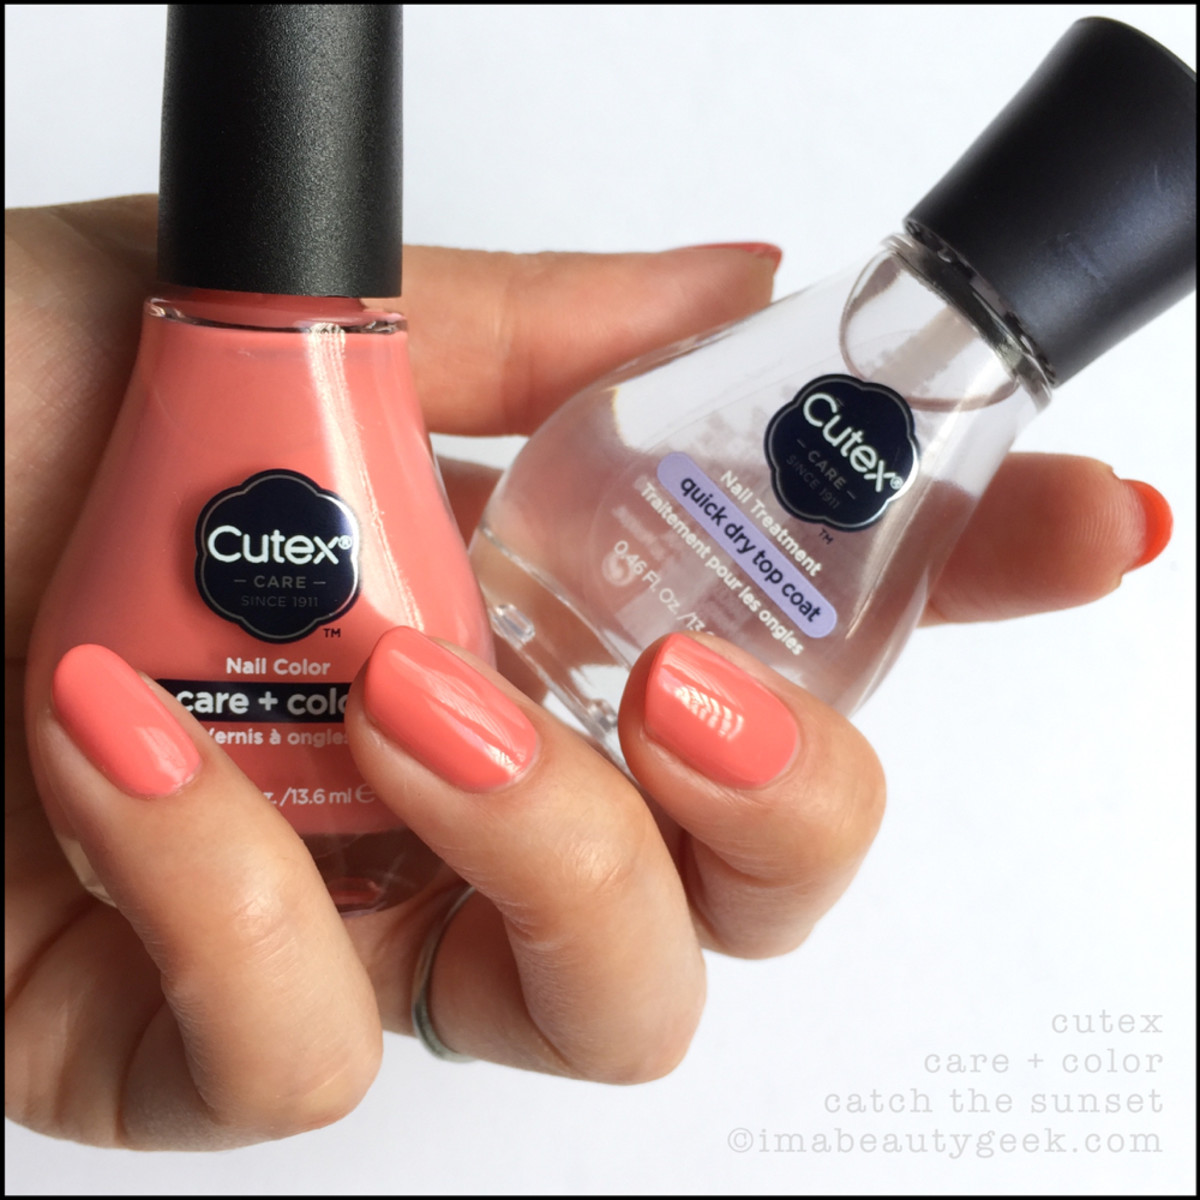 Cutex Quick Dry Top Coat over Catch the Sunset - Cutex 2017 Swatches Review